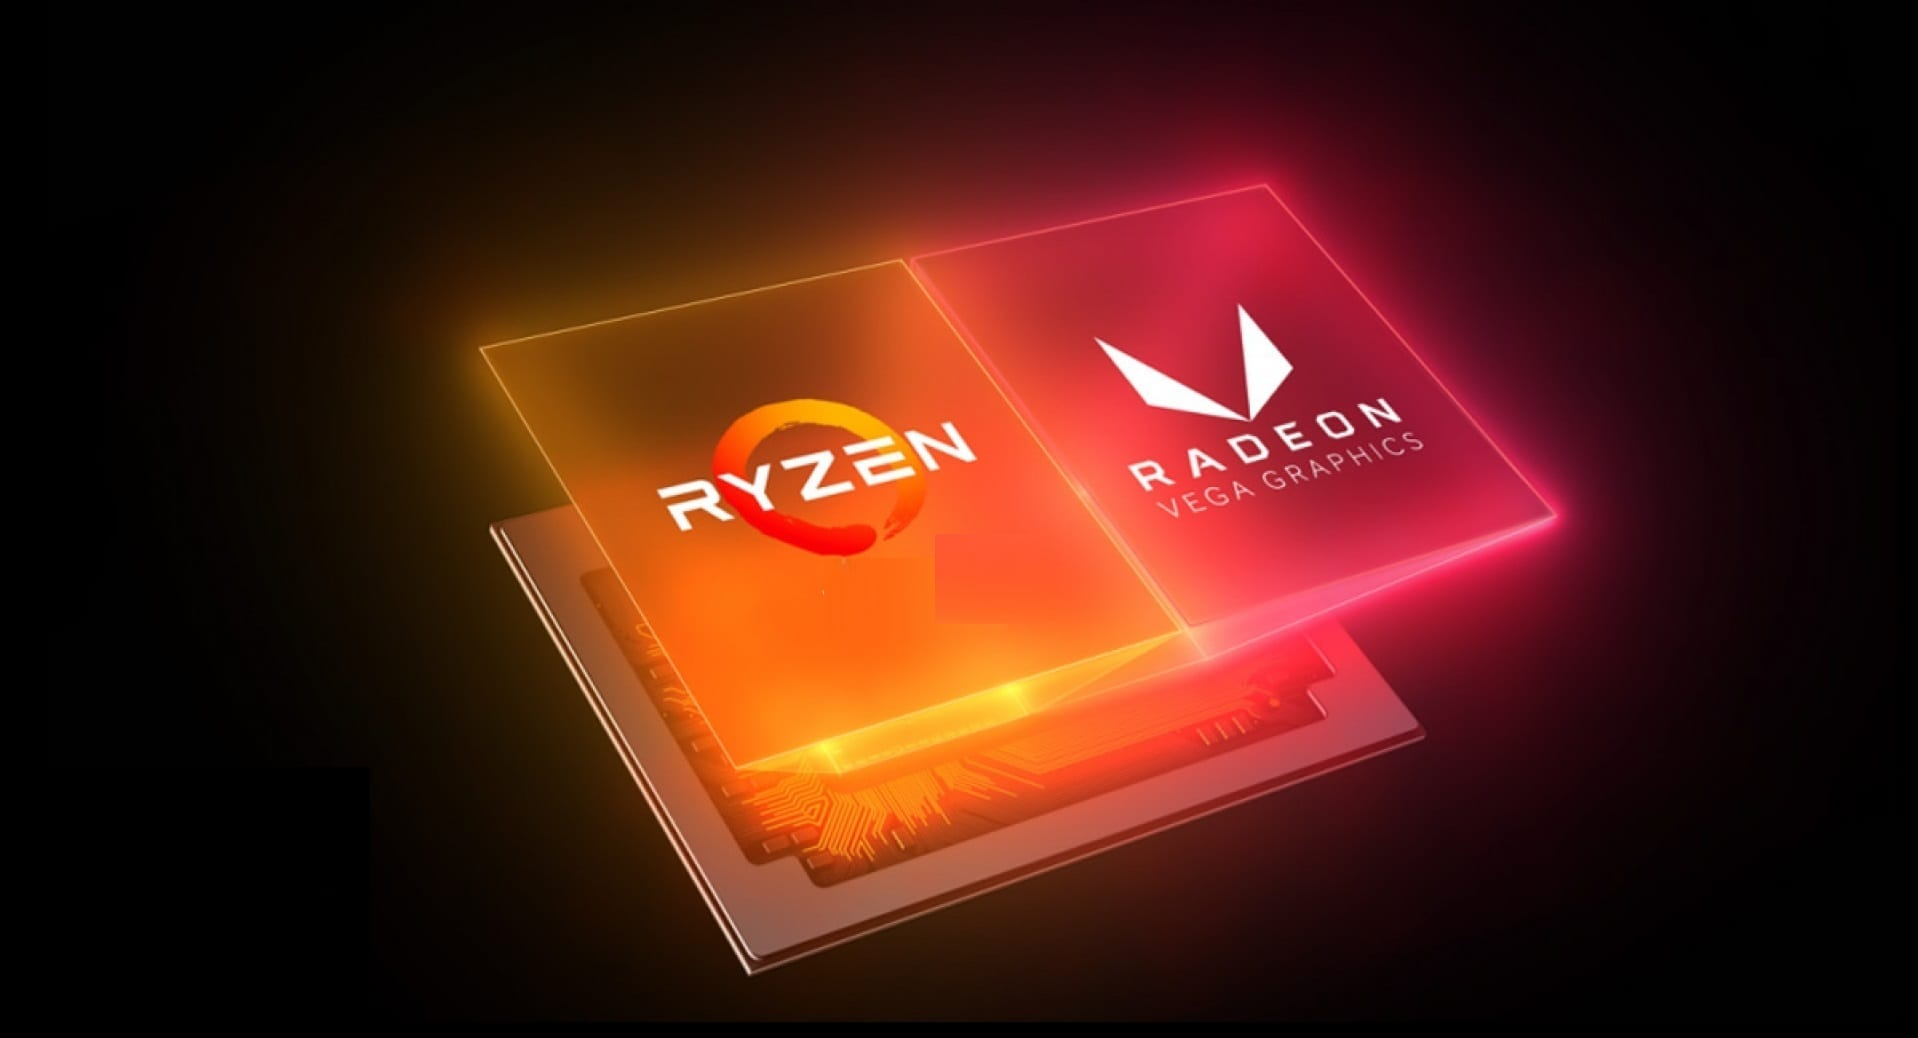 Amd Ryzen 5 3400g Apu With Vega Graphics Spotted Techquila